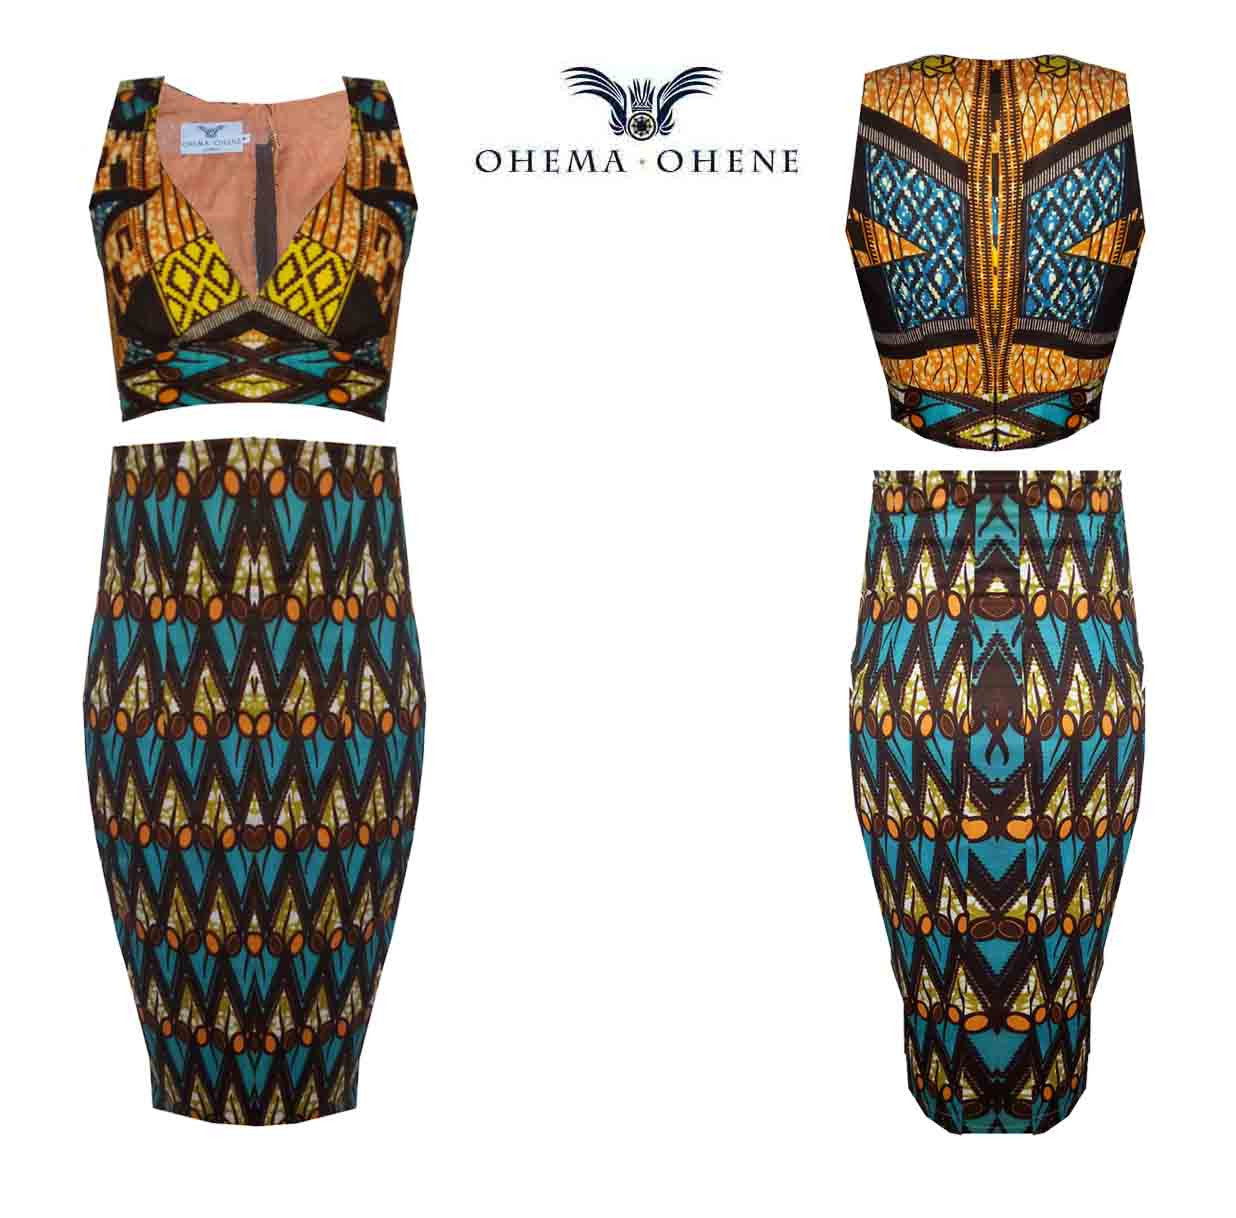 High Waist African Print Two Piece Crop Set-Azzey - OHEMA OHENE AFRICAN INSPIRED FASHION  - 3